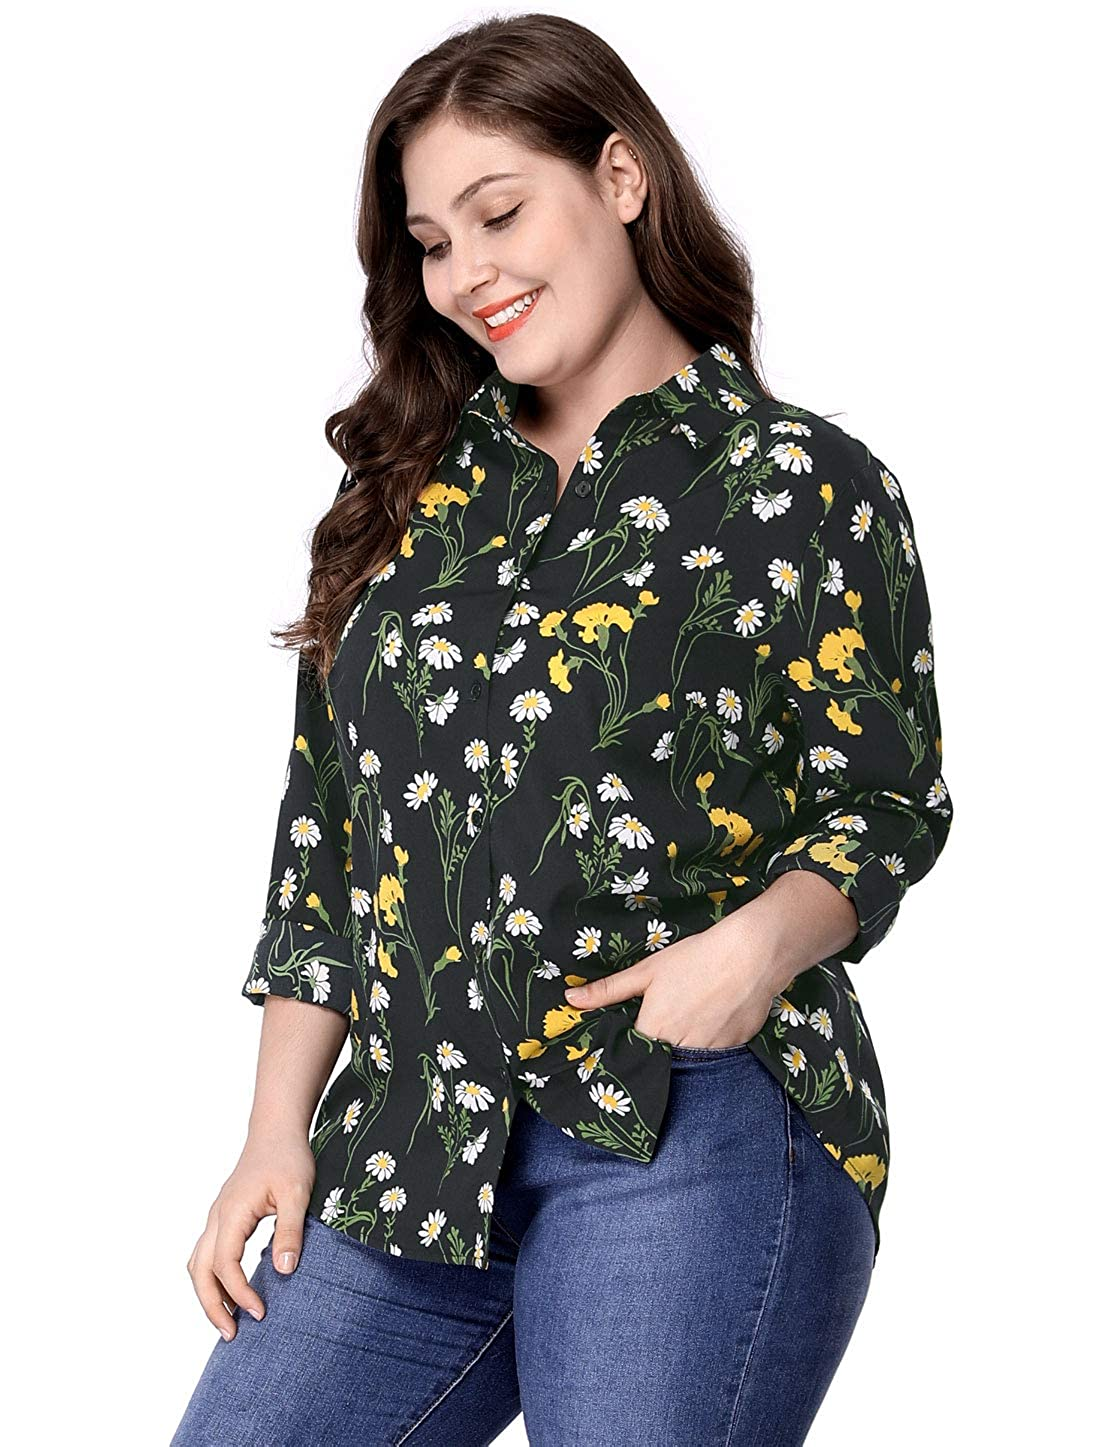 Agnes Orinda Women's Plus Size Long Sleeve Floral Print Button Down Shirt